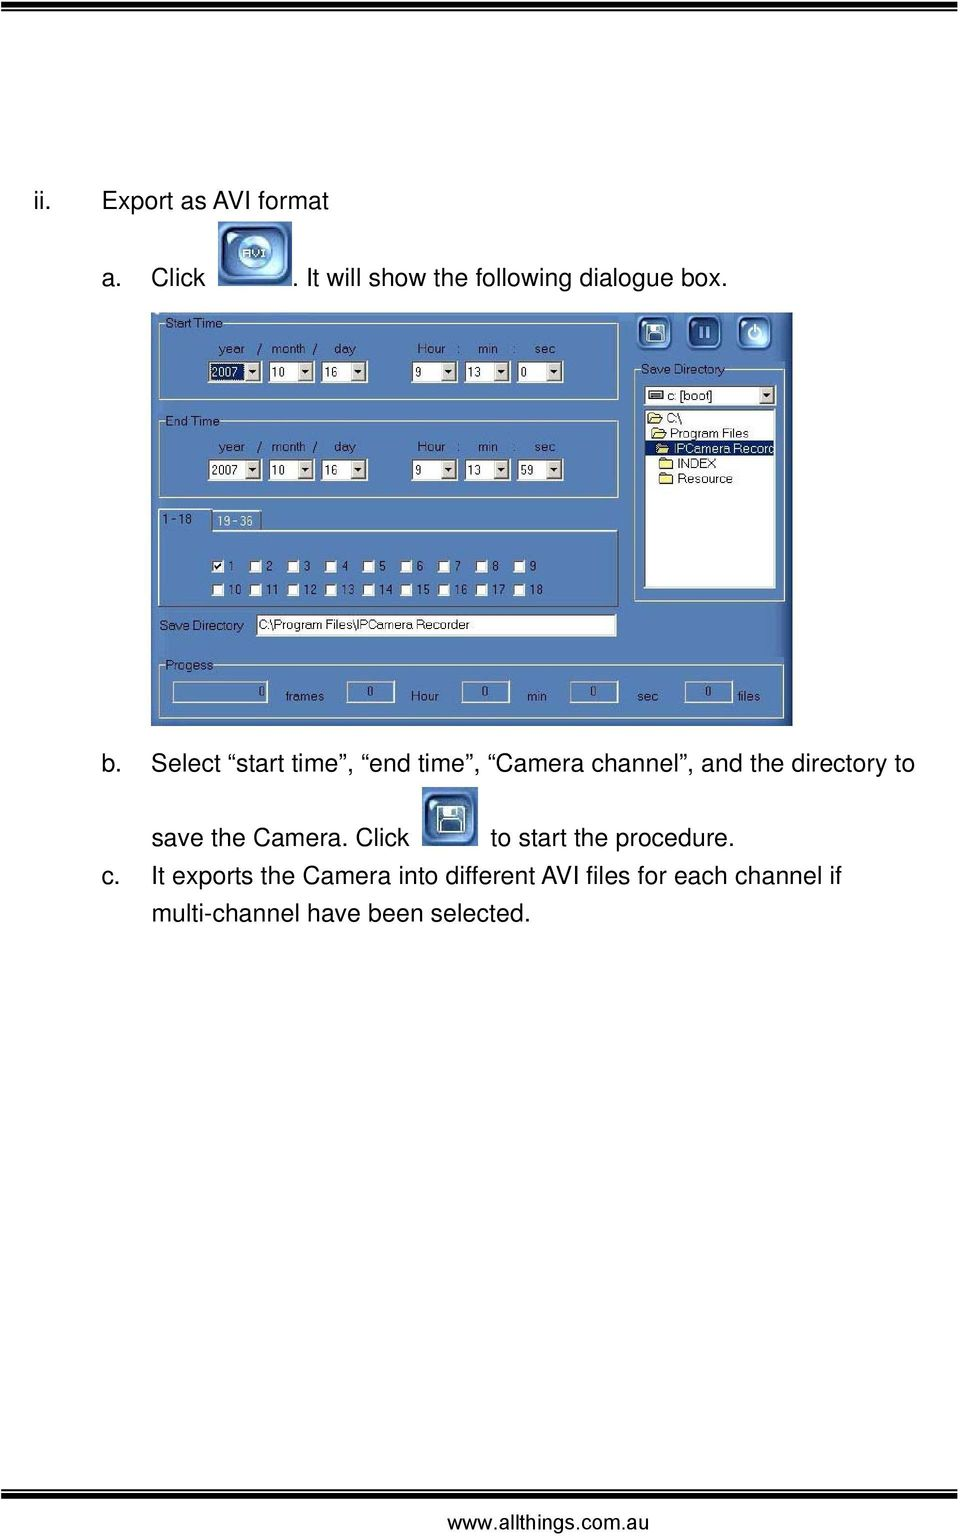 x. b. Select start time, end time, Camera channel, and the directory to